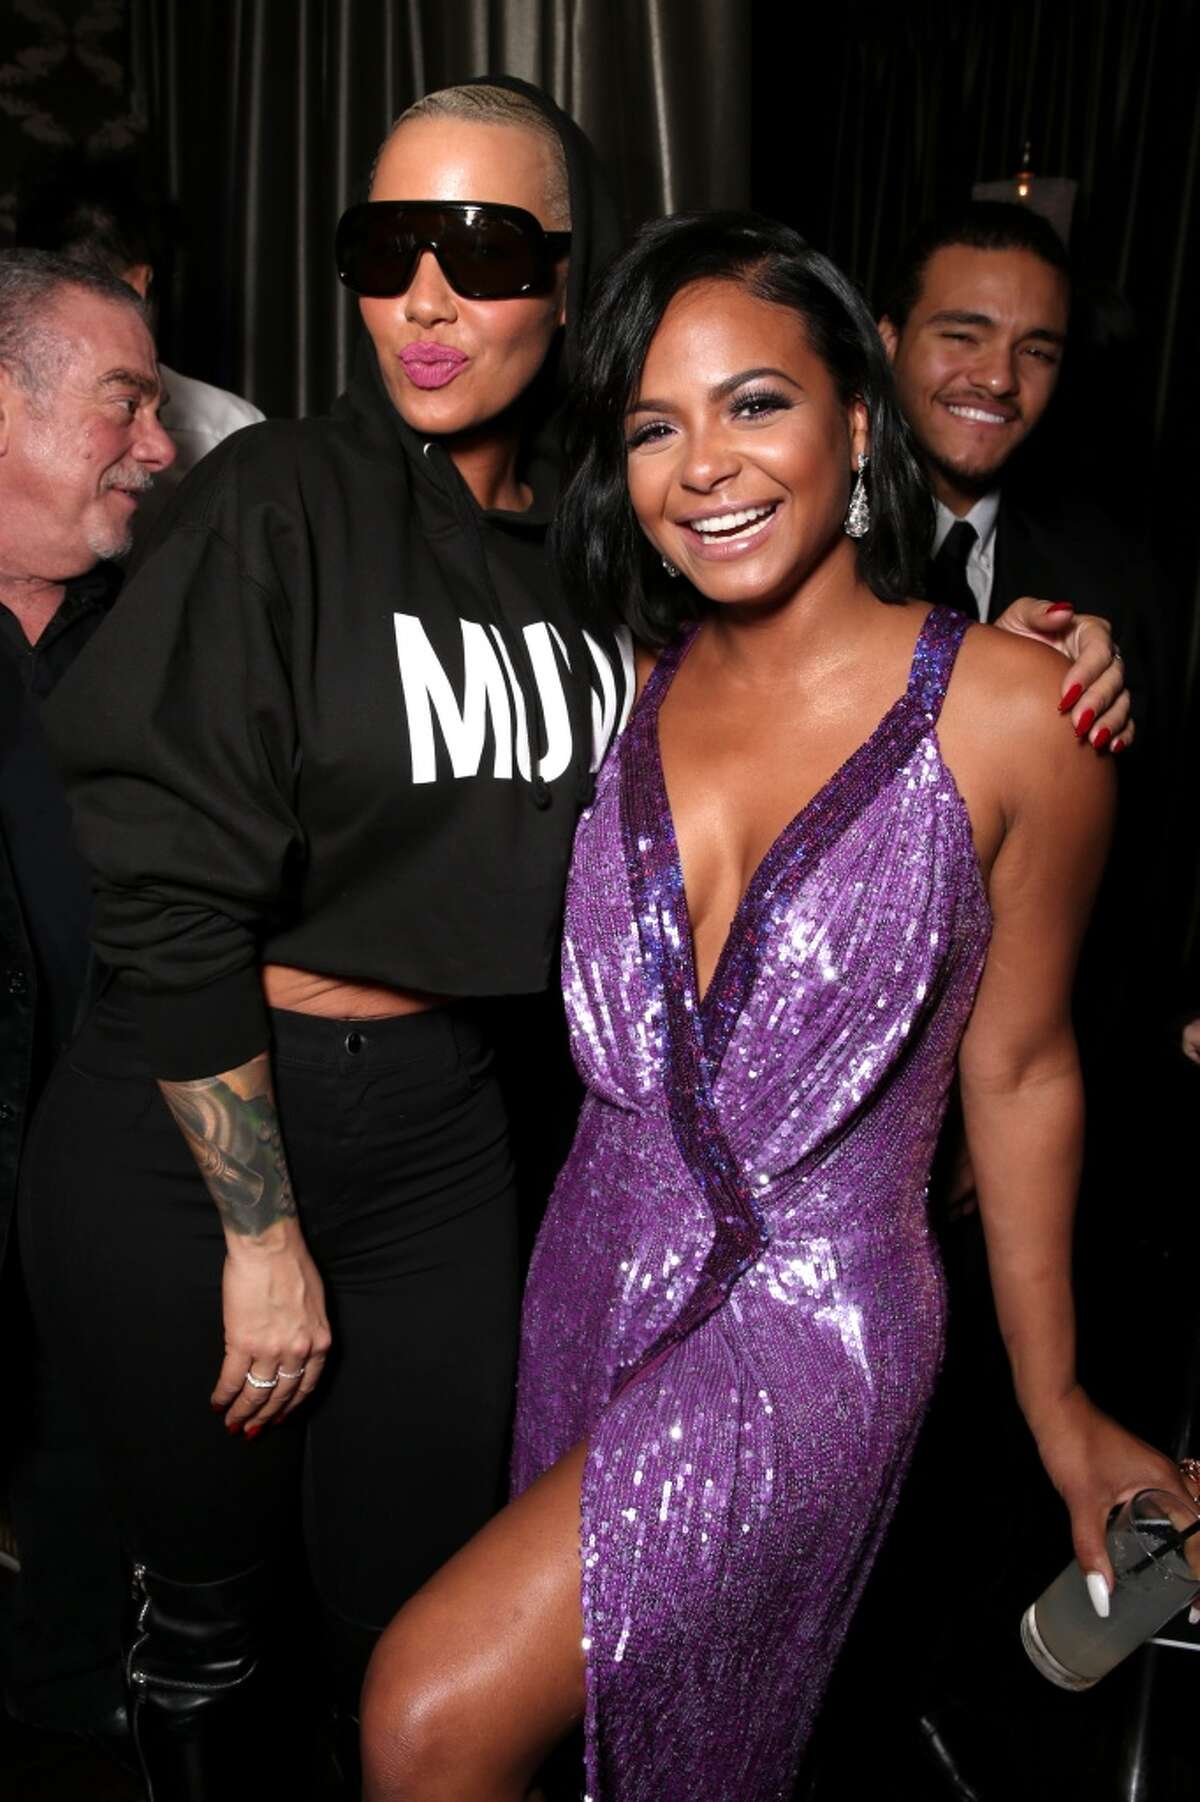 Model Amber Rose (L) and singer Christina Milian attend DailyMail's after party for 2016 People's Choice Awards at Club Nokia on Jan. 6, 2016 in Los Angeles, Calif.